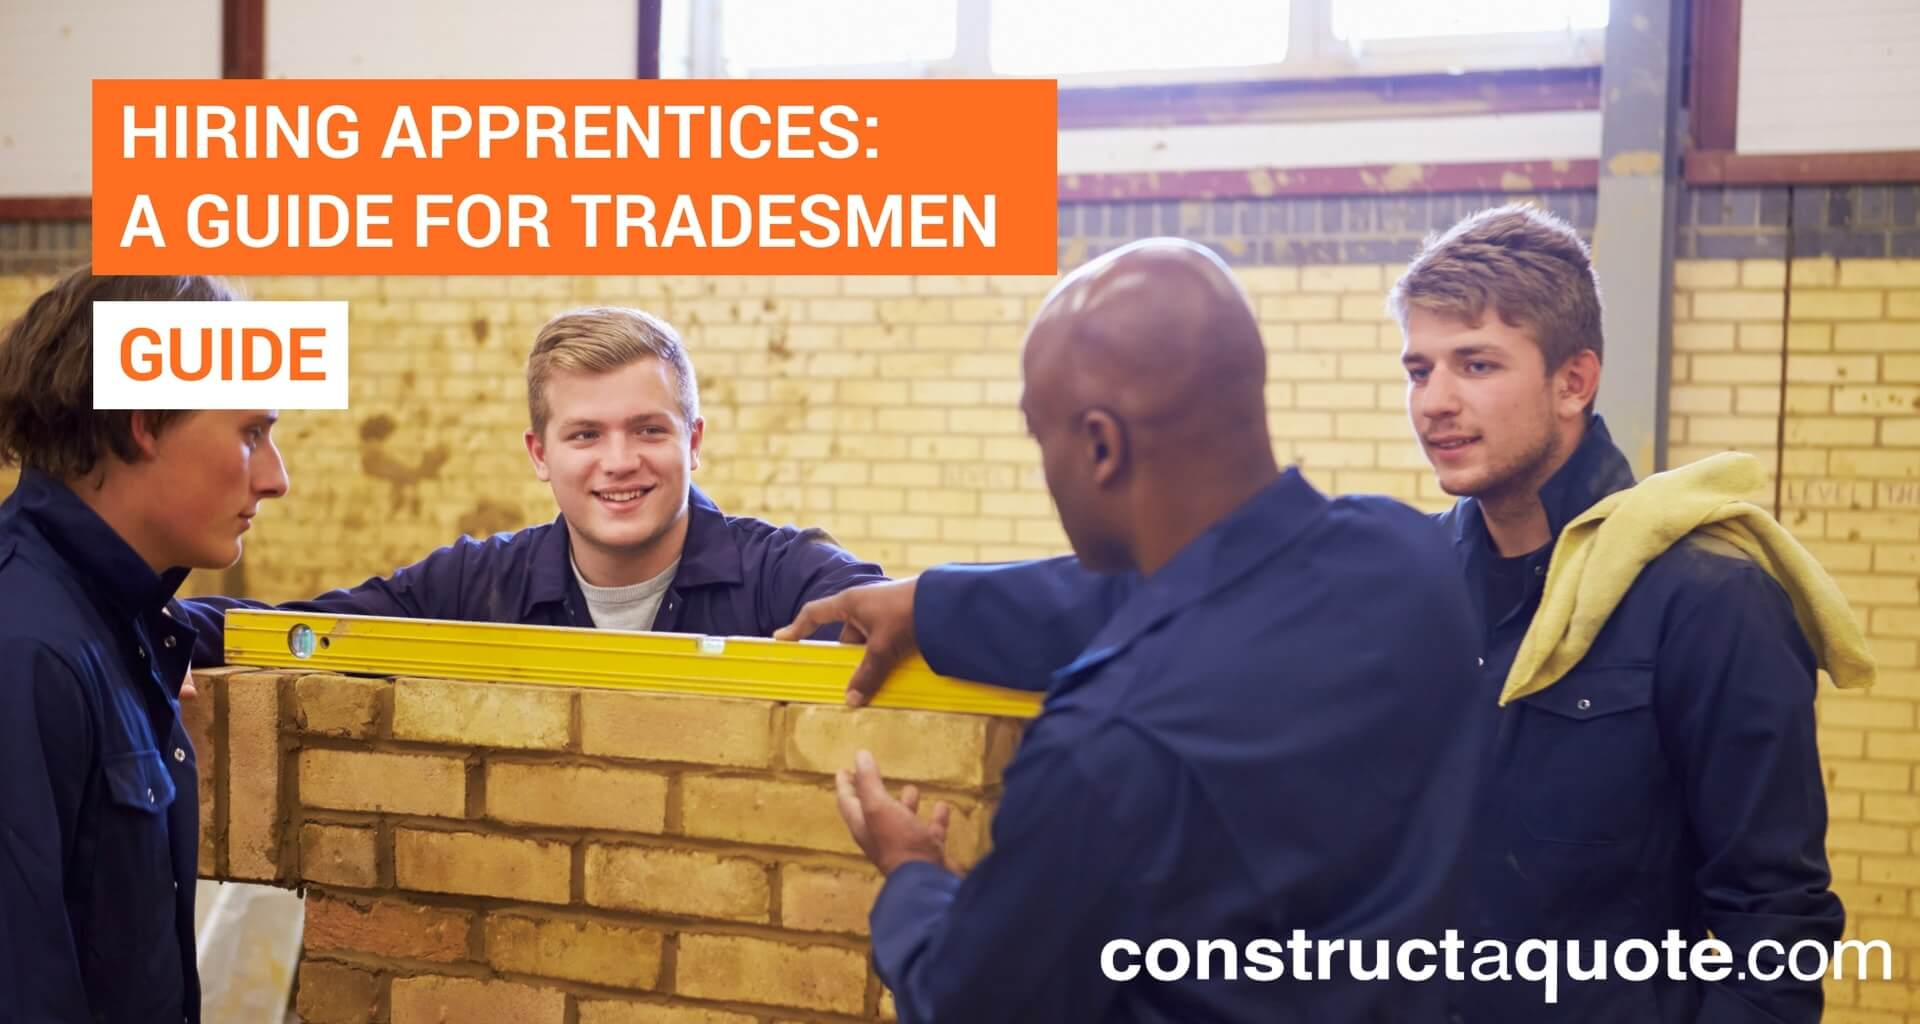 Hiring apprentices: A guide for Tradesmen